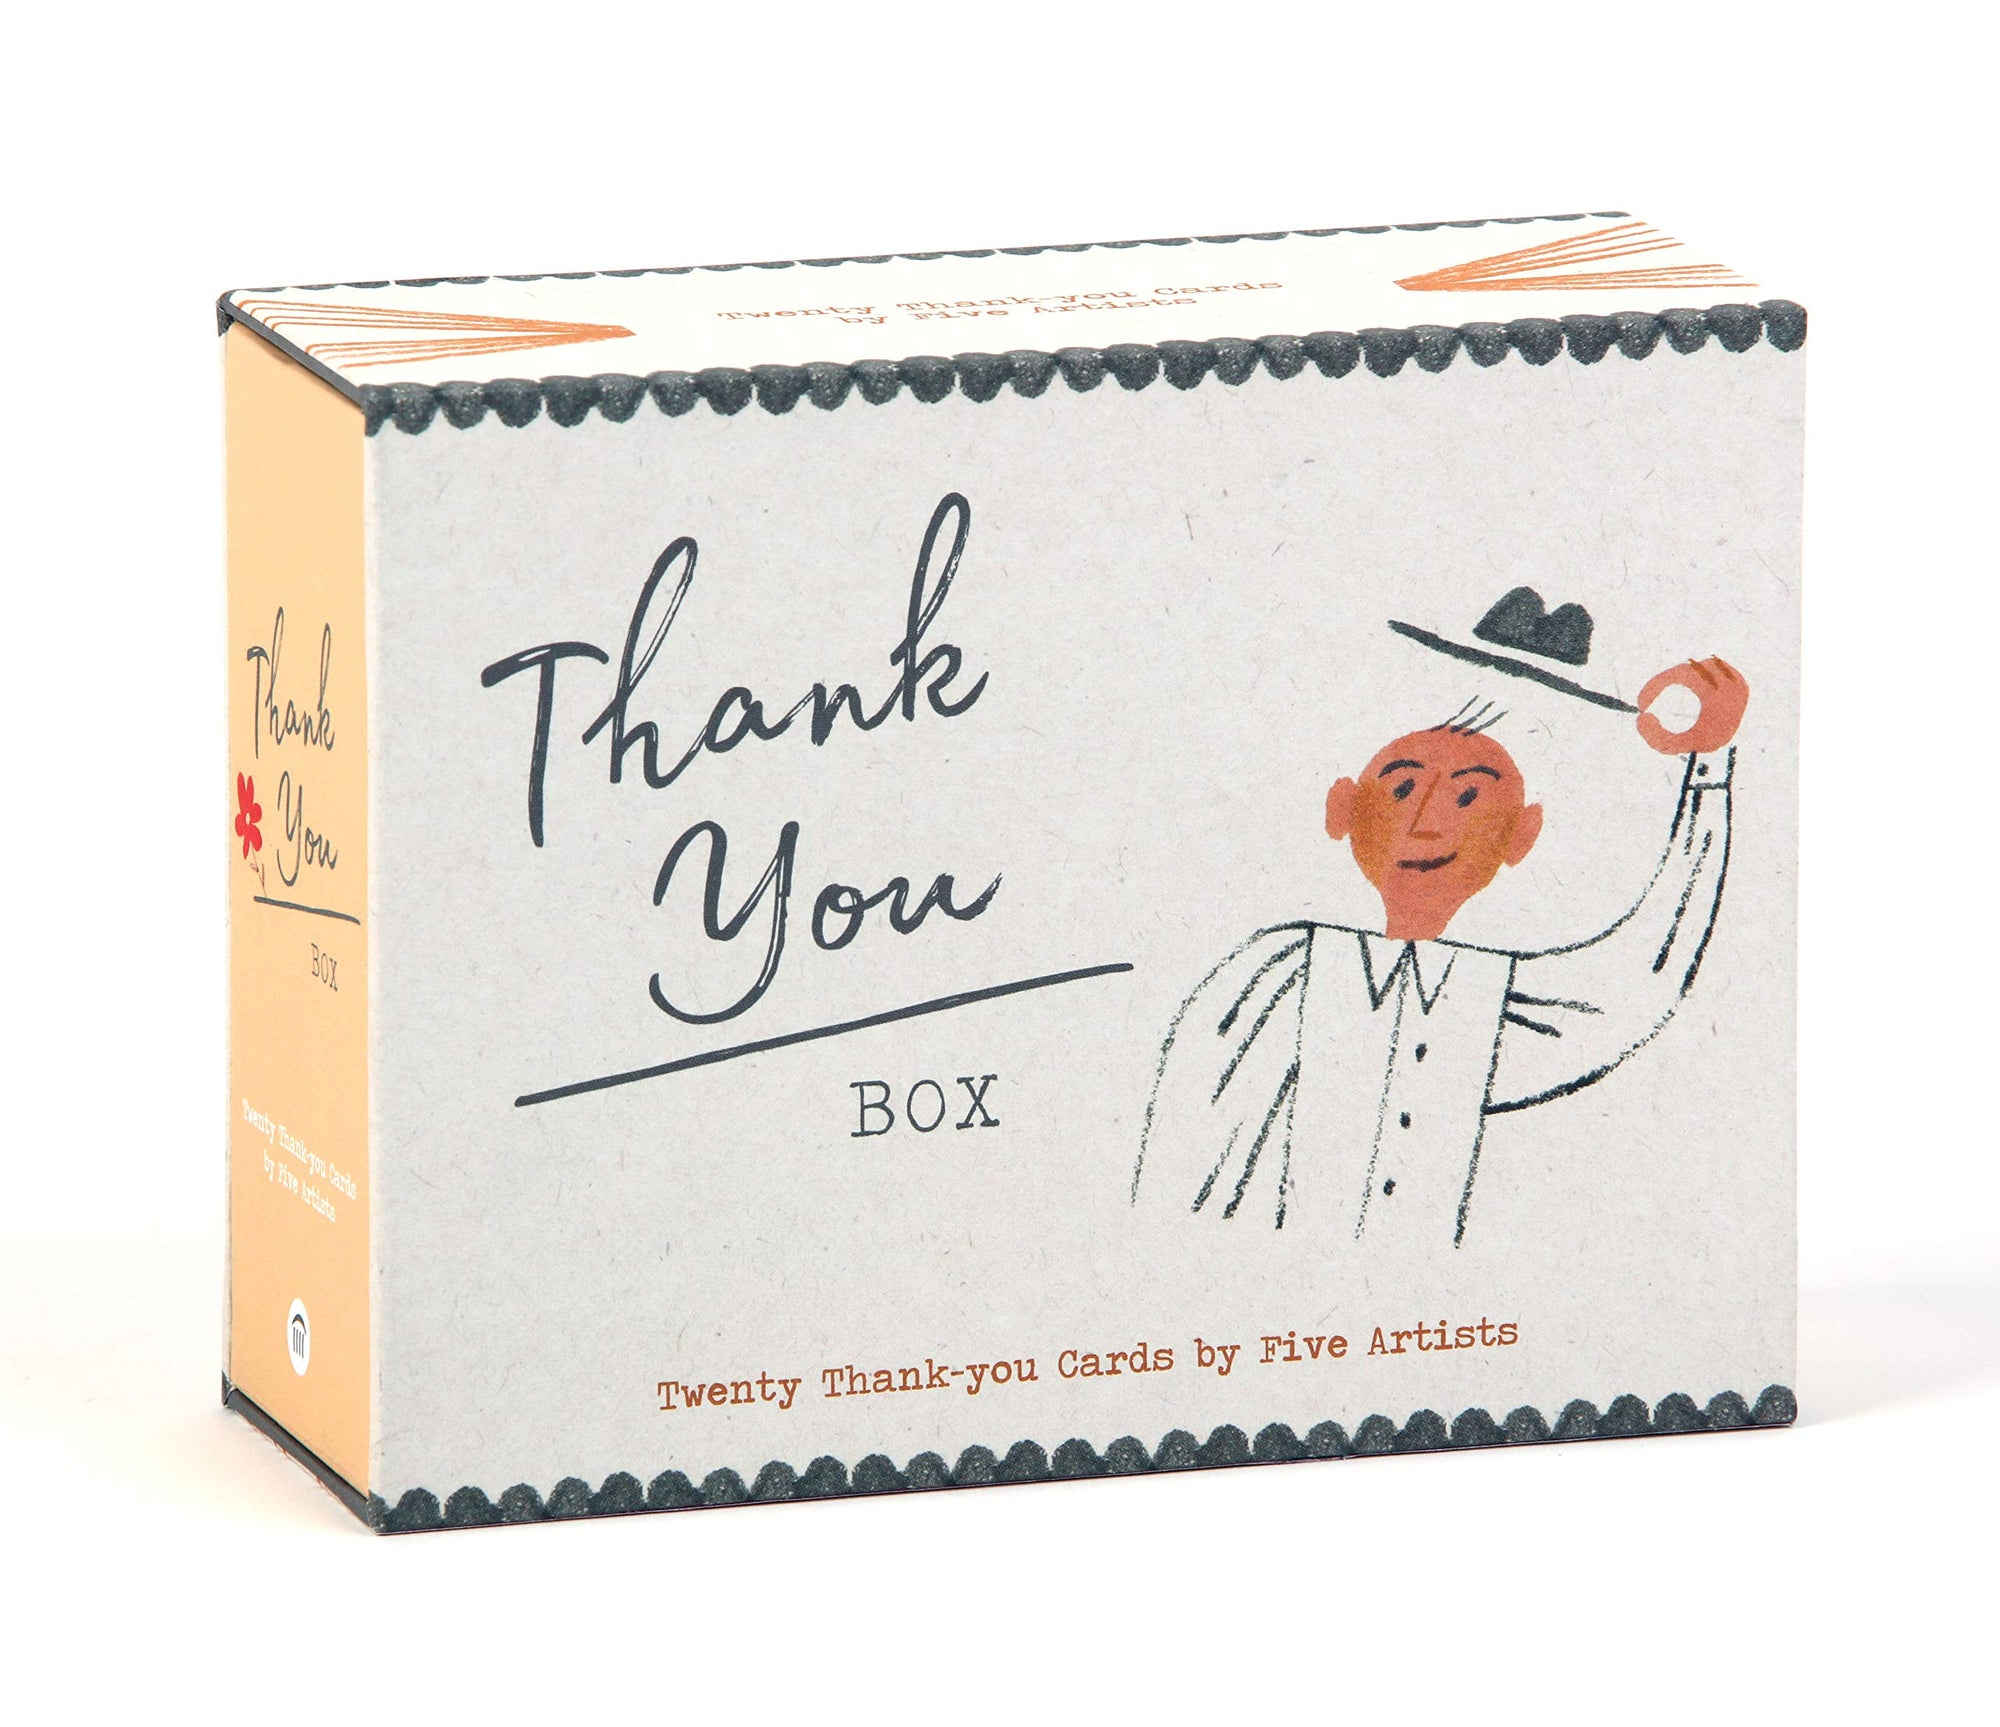 Thank You Box: 20 Thank You Cards